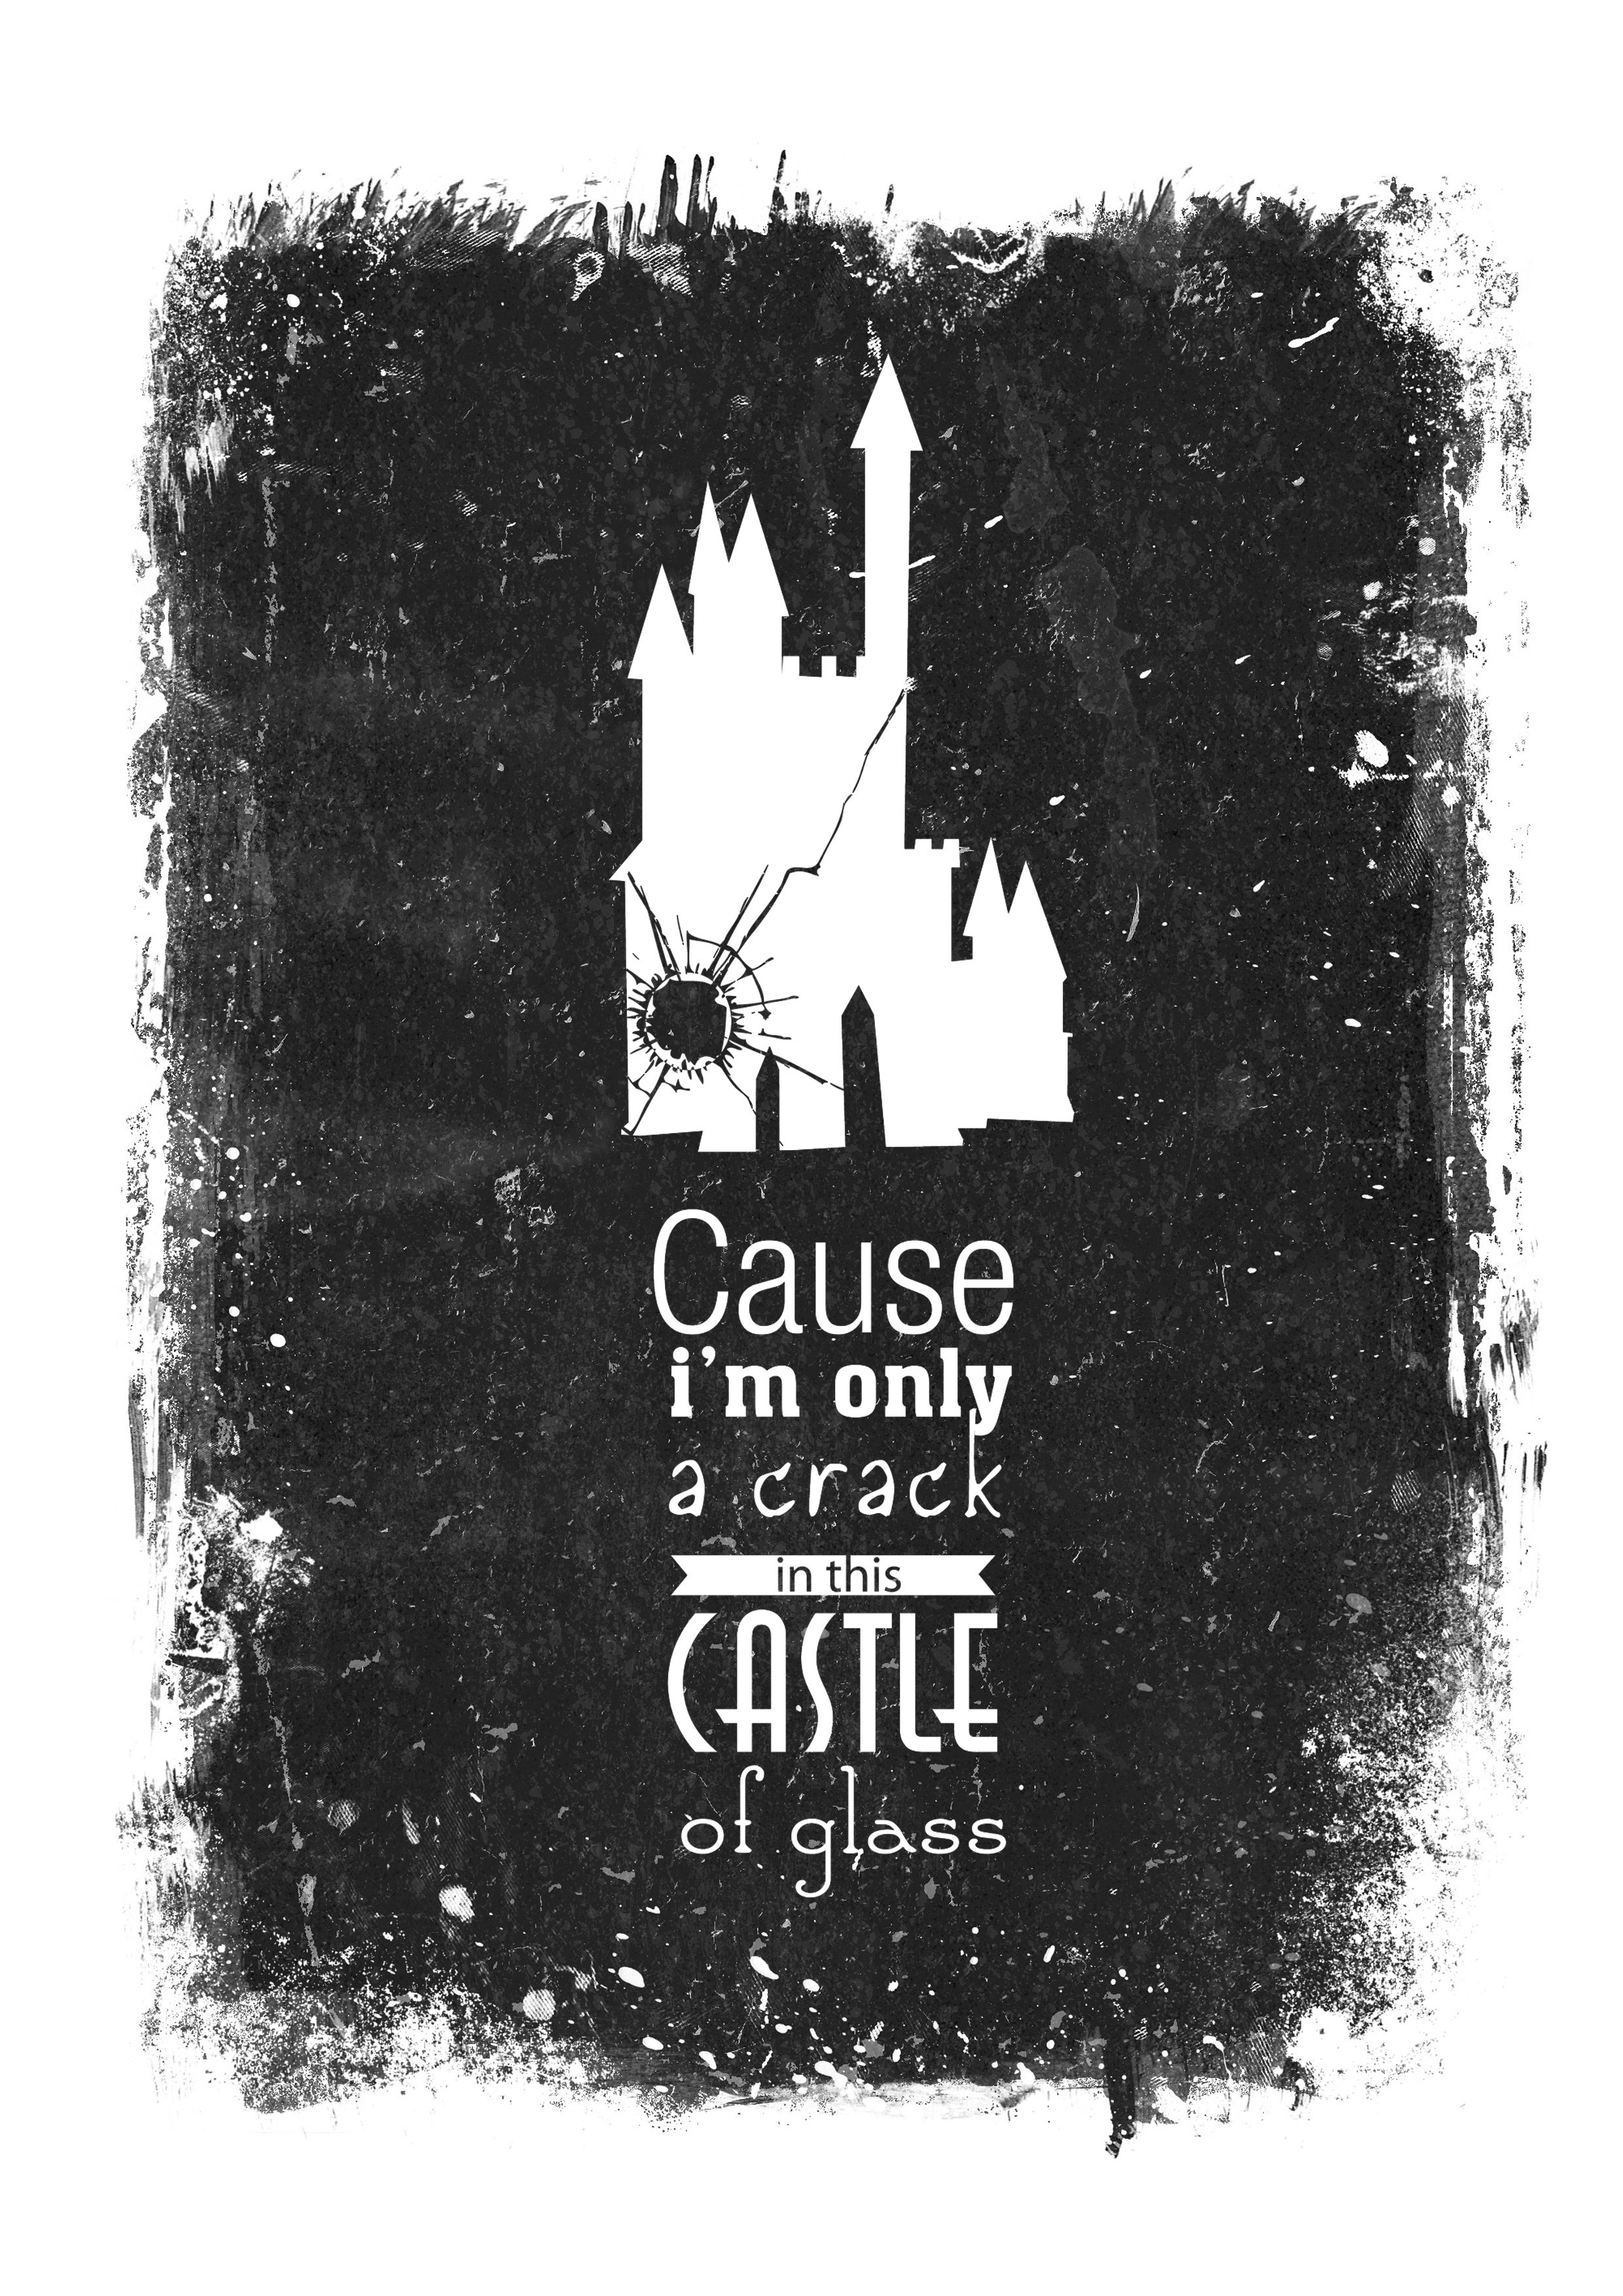 Wallpaper iphone linkin park - Castle Of Glass Linkin Park One Of My Favorite Songs Off Their Album